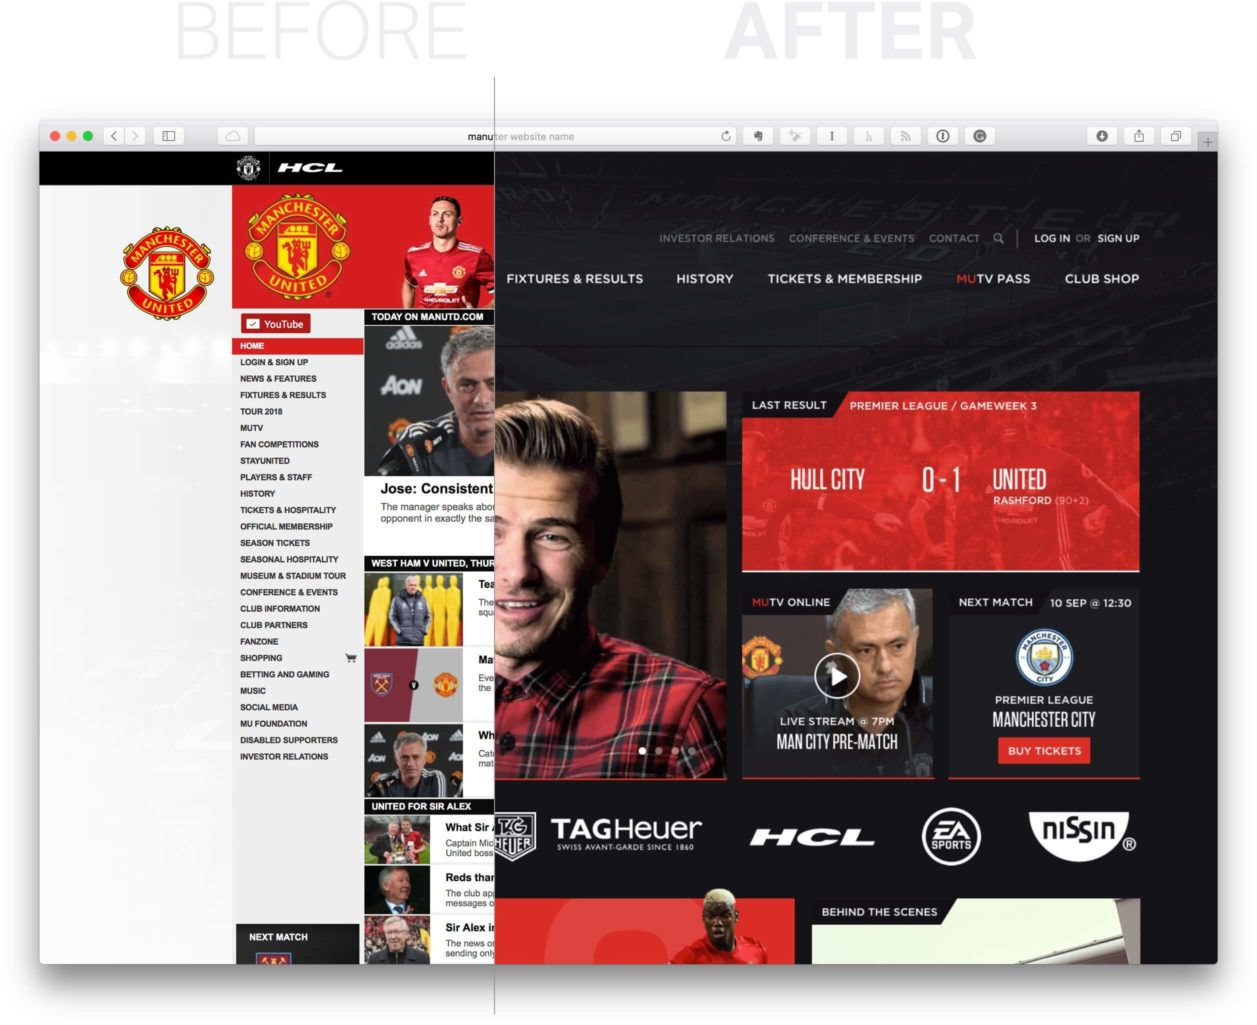 Mufc Before After@2X